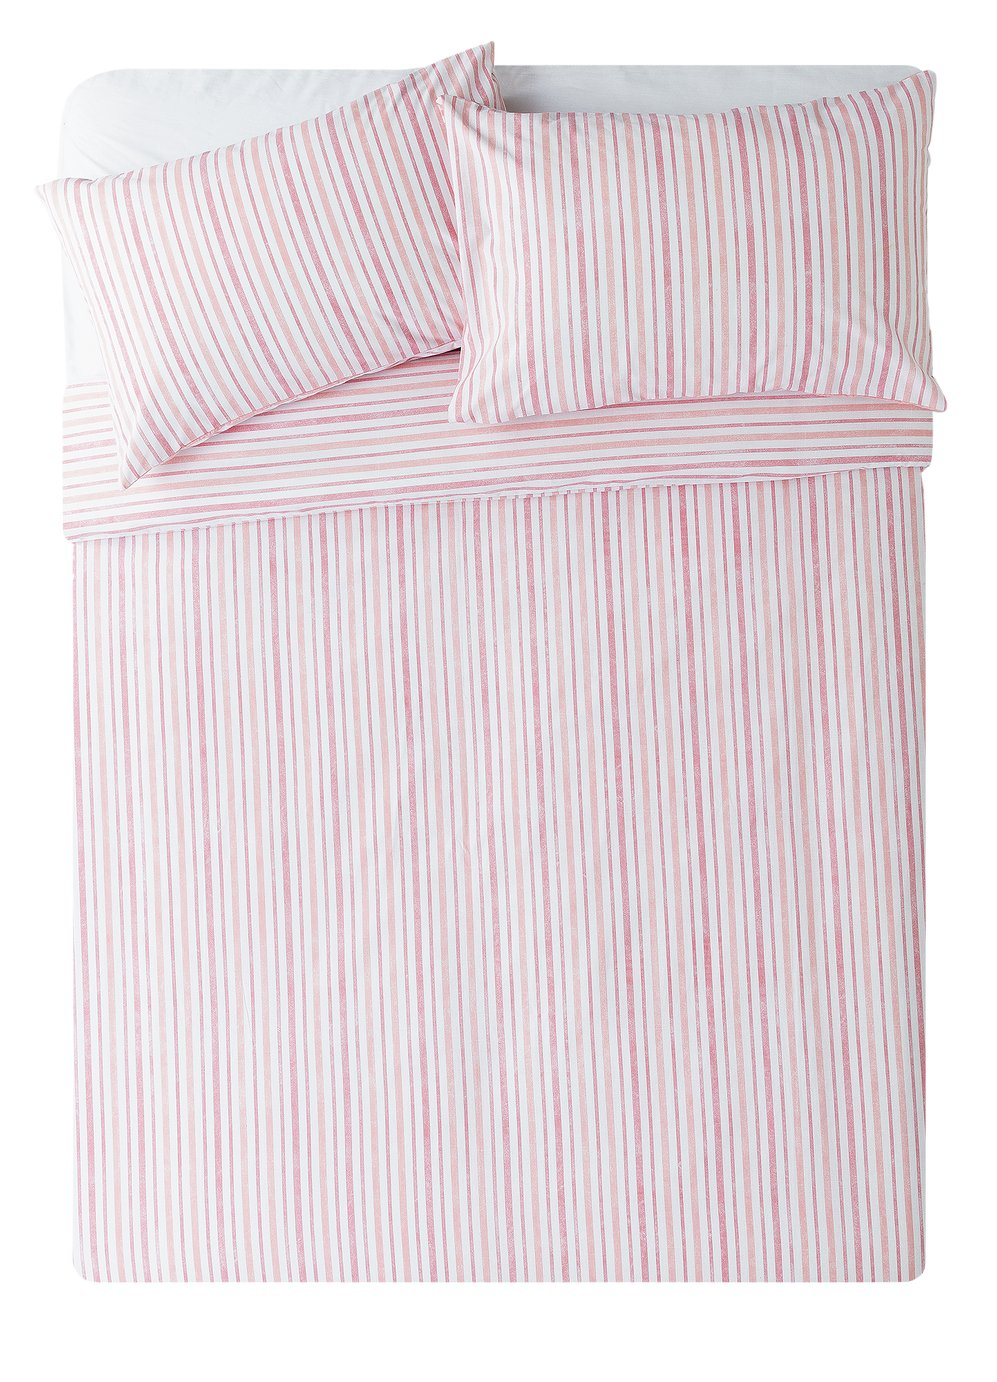 Argos Home Striped Bedding Set - Kingsize